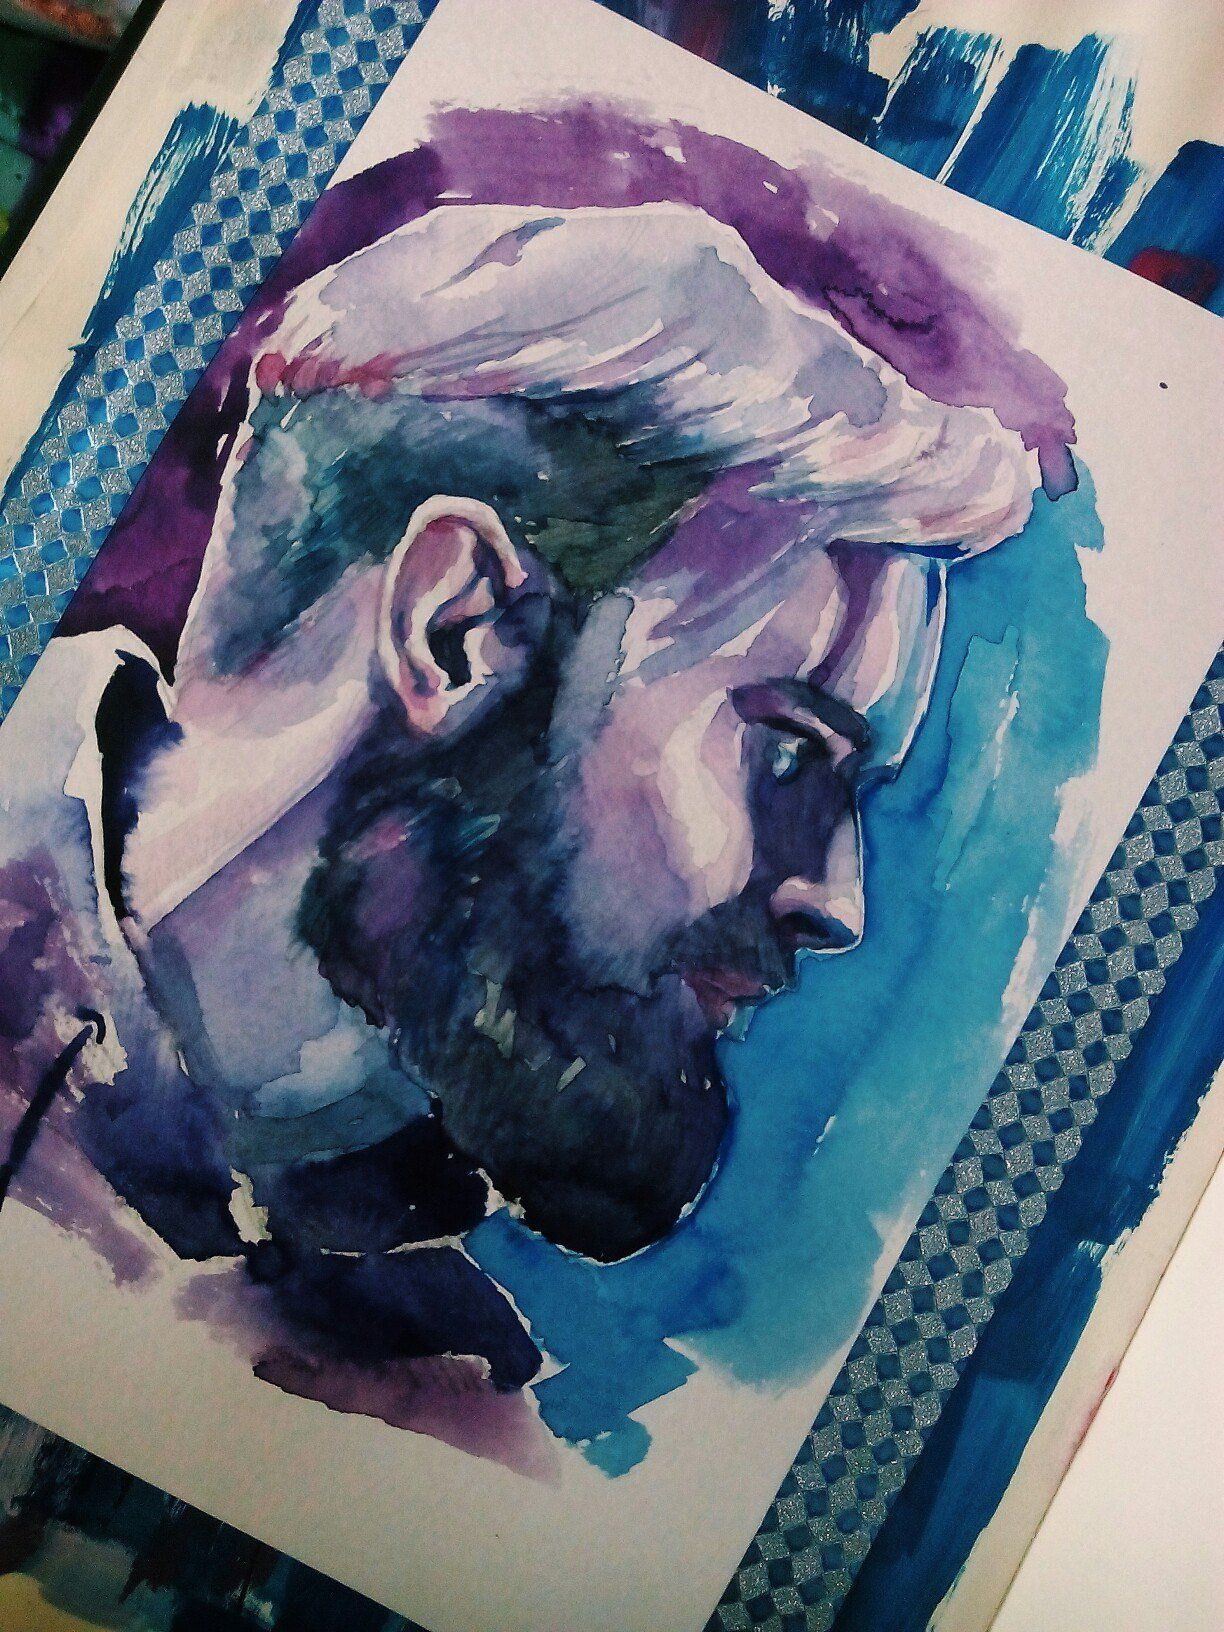 Amazing Pewdiepie Watercolor By Ourcallboy On Reddit Youtube Art